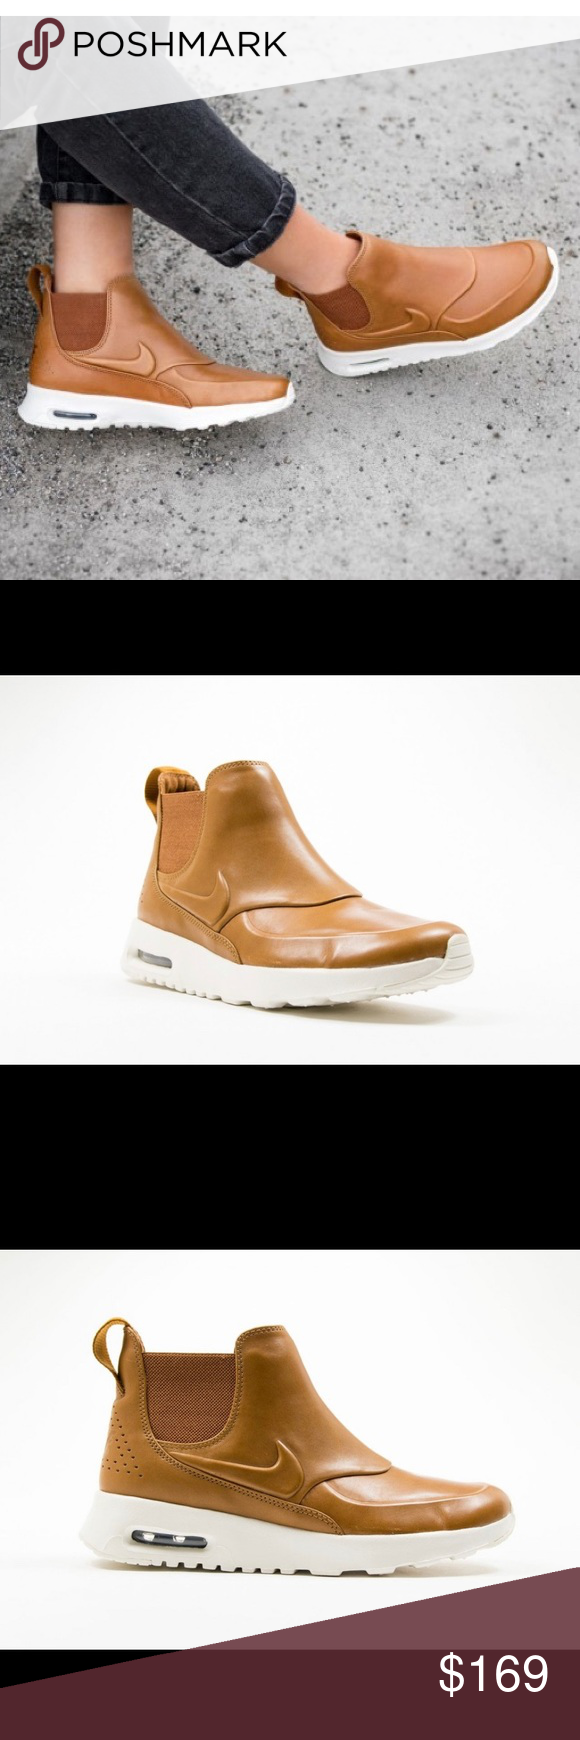 Nike Wmns Air Max Thea Mid Ale Brown | Brown nike shoes